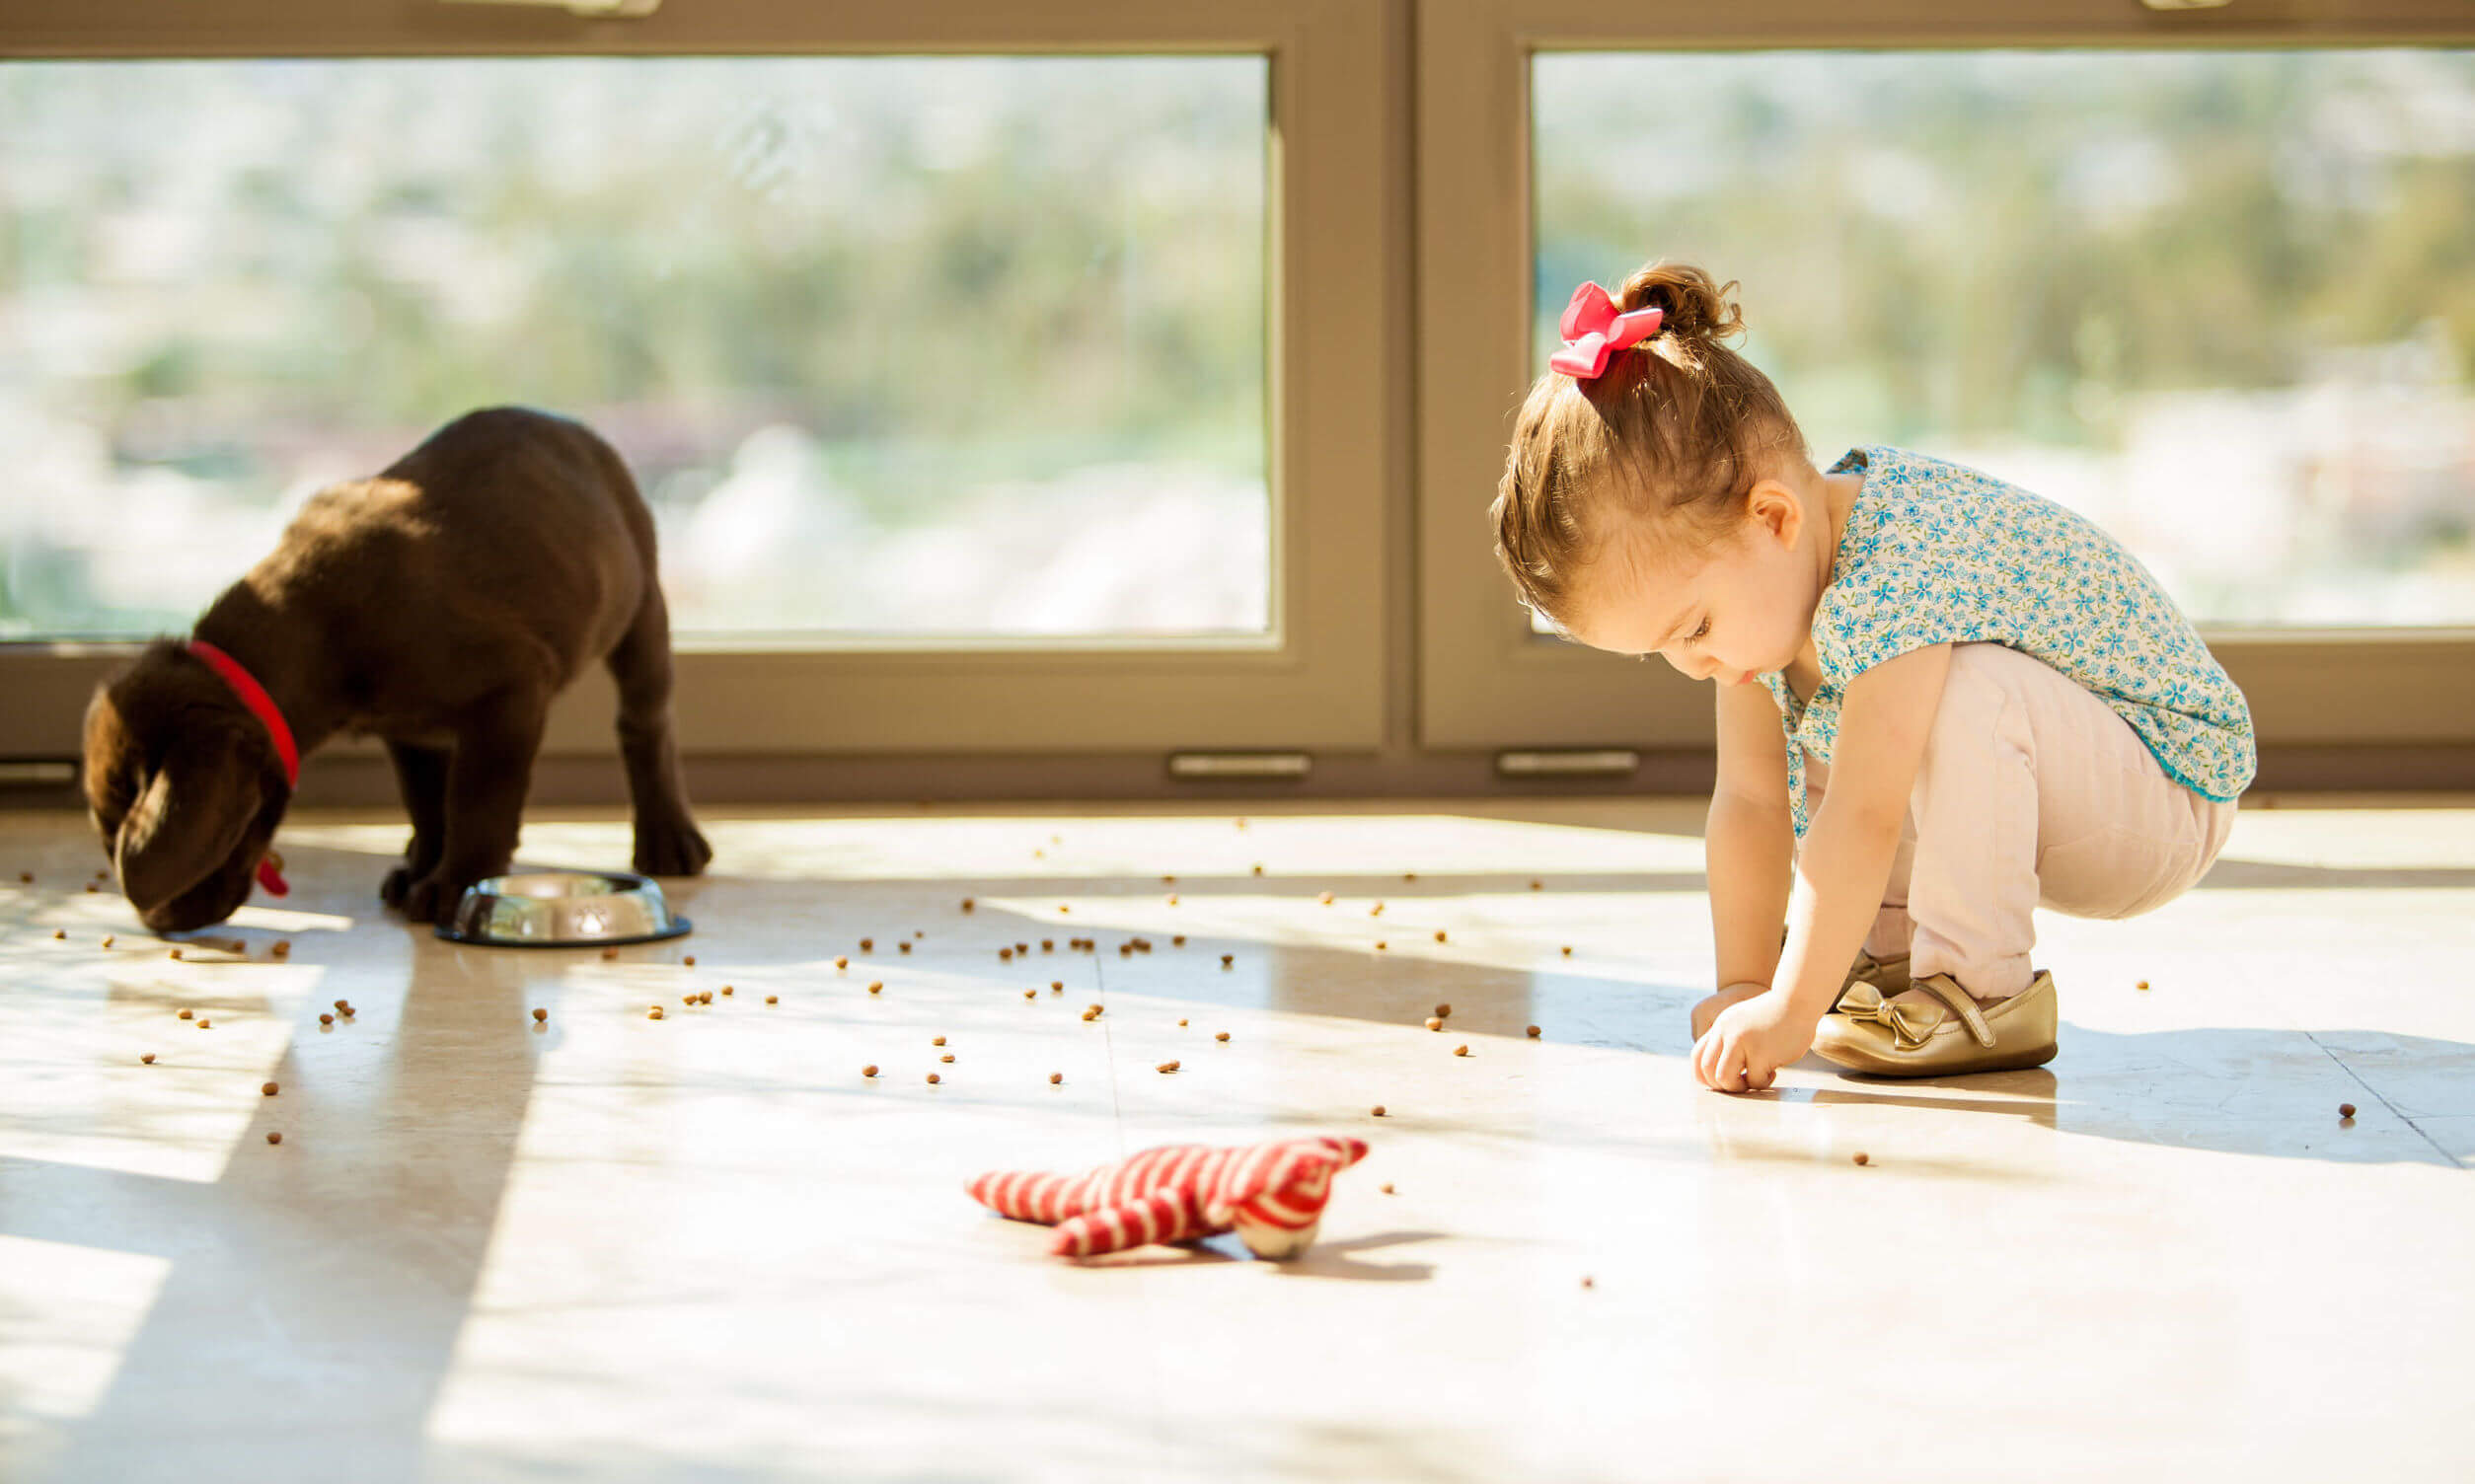 floor sanitization in st george ut child and dog on hard floor with spilled dog food